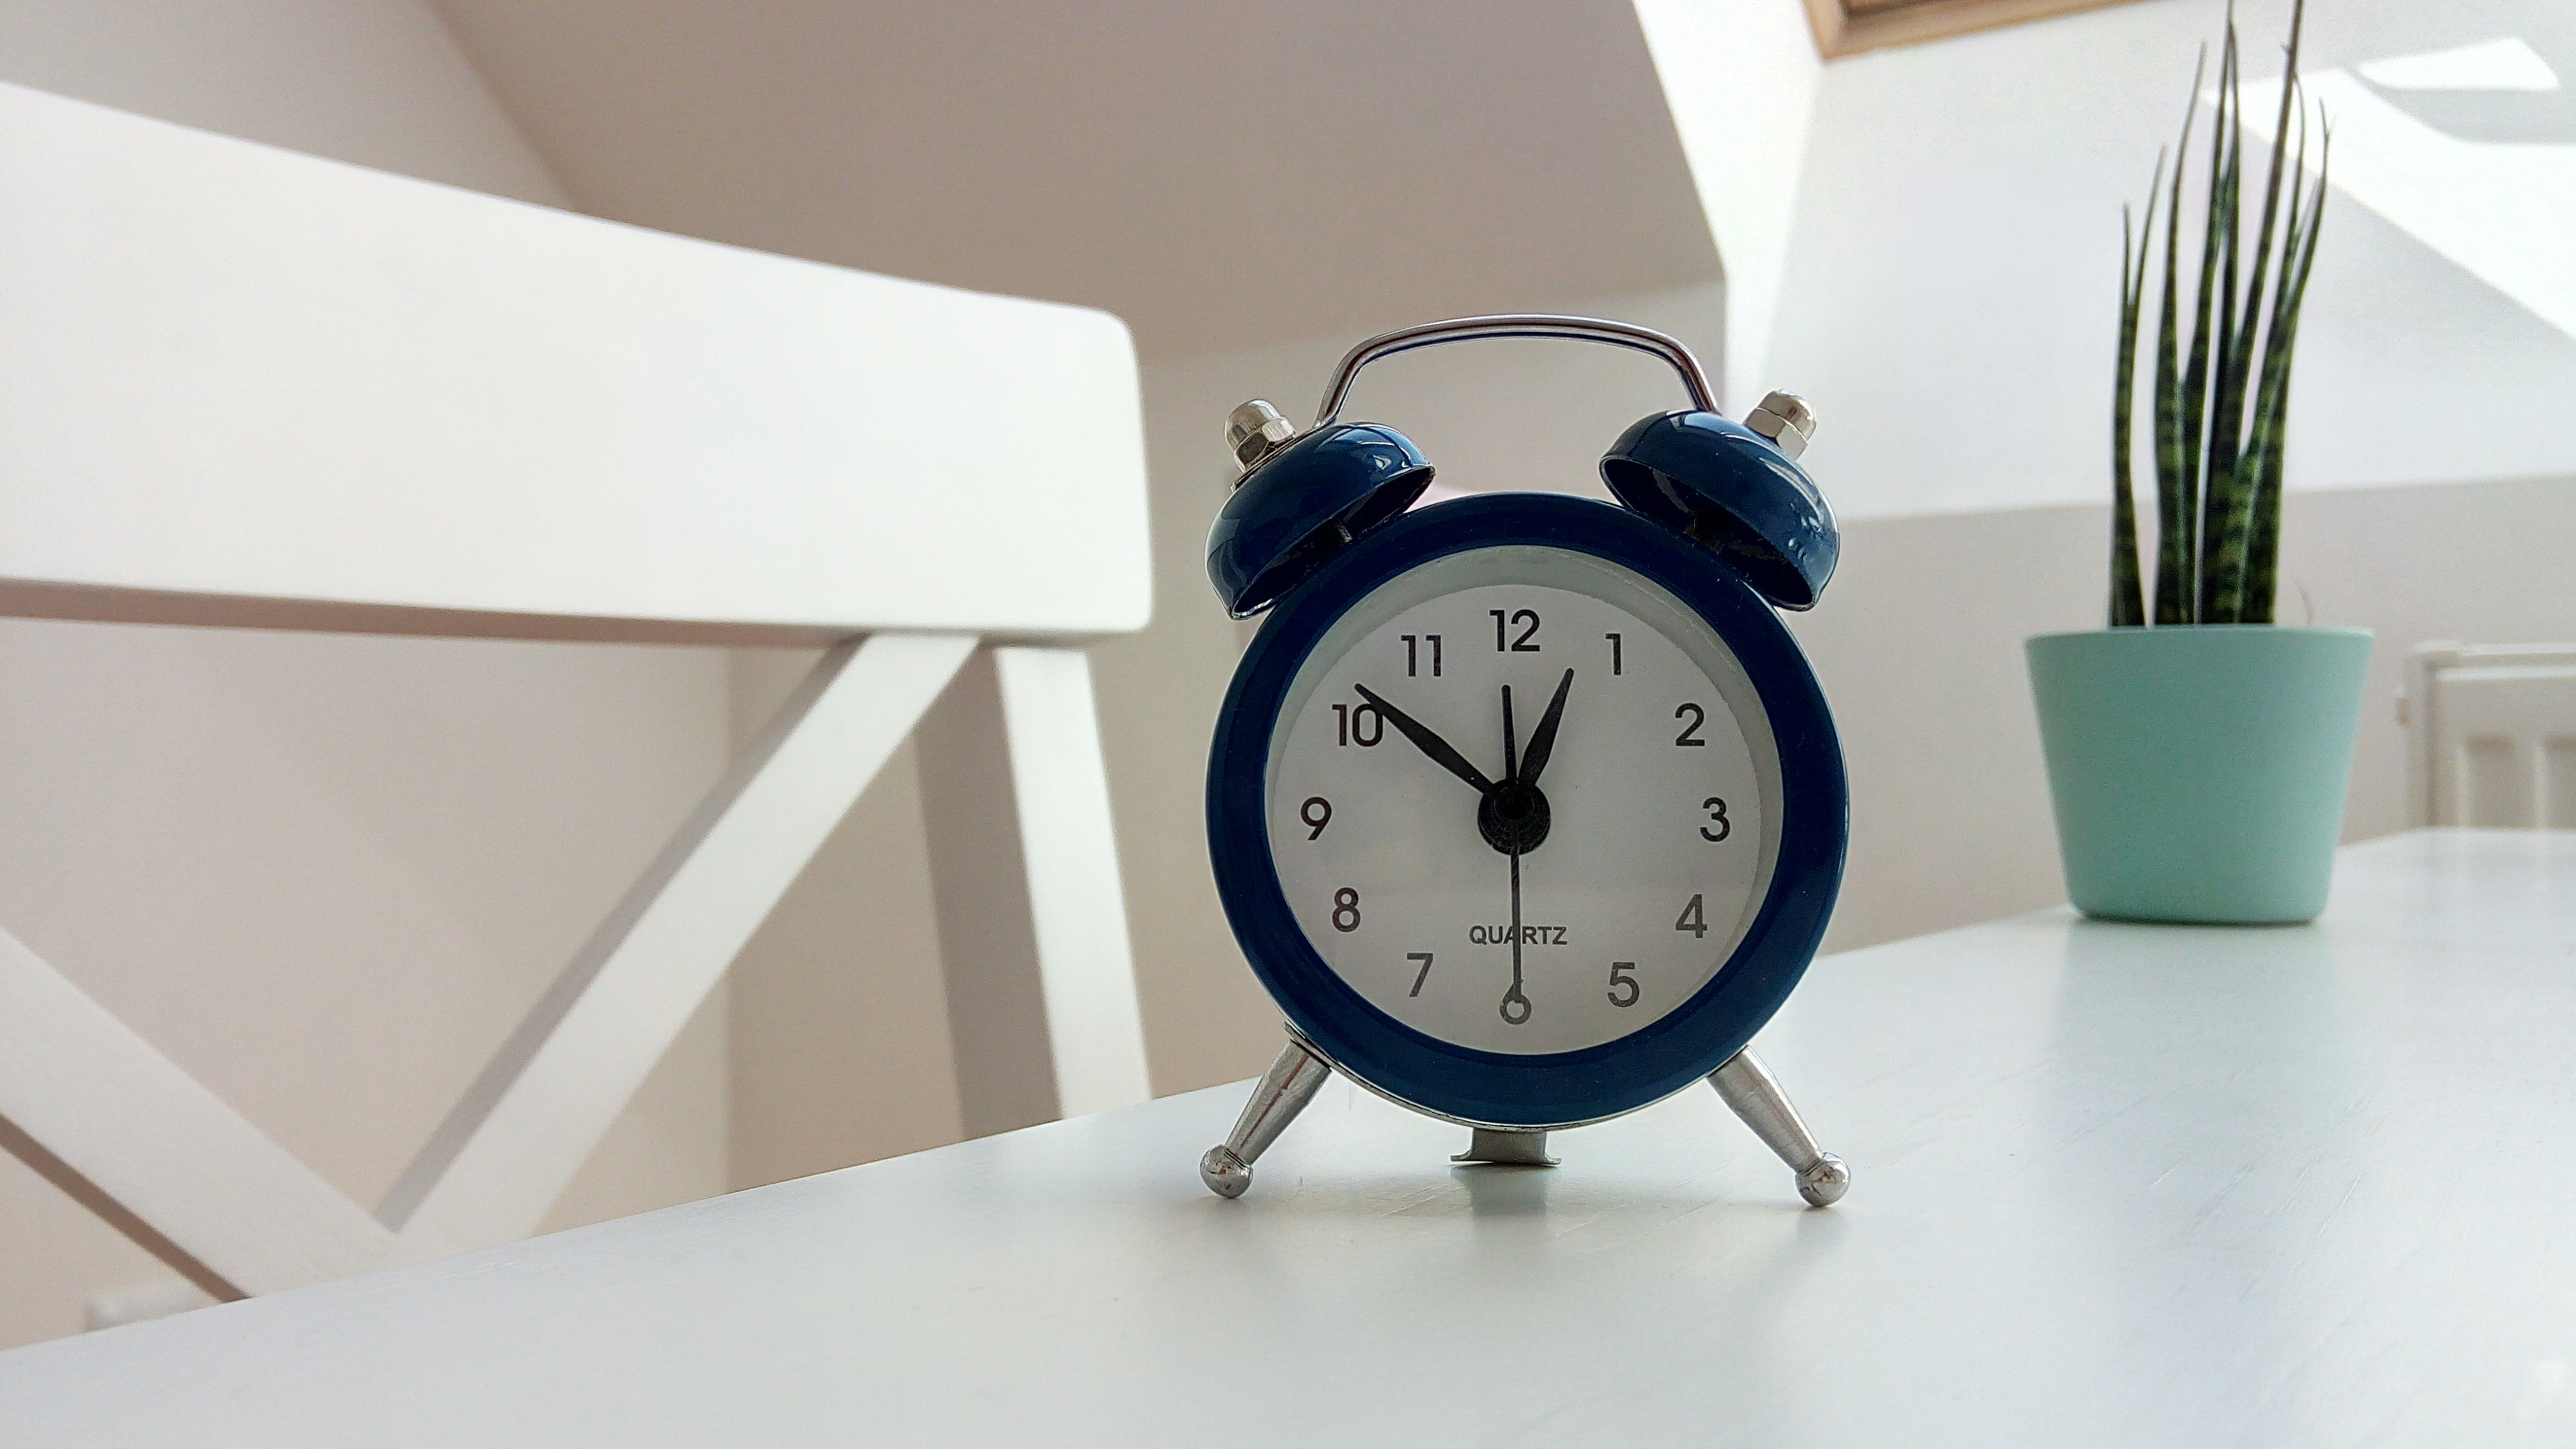 Classic alarm clock on a table